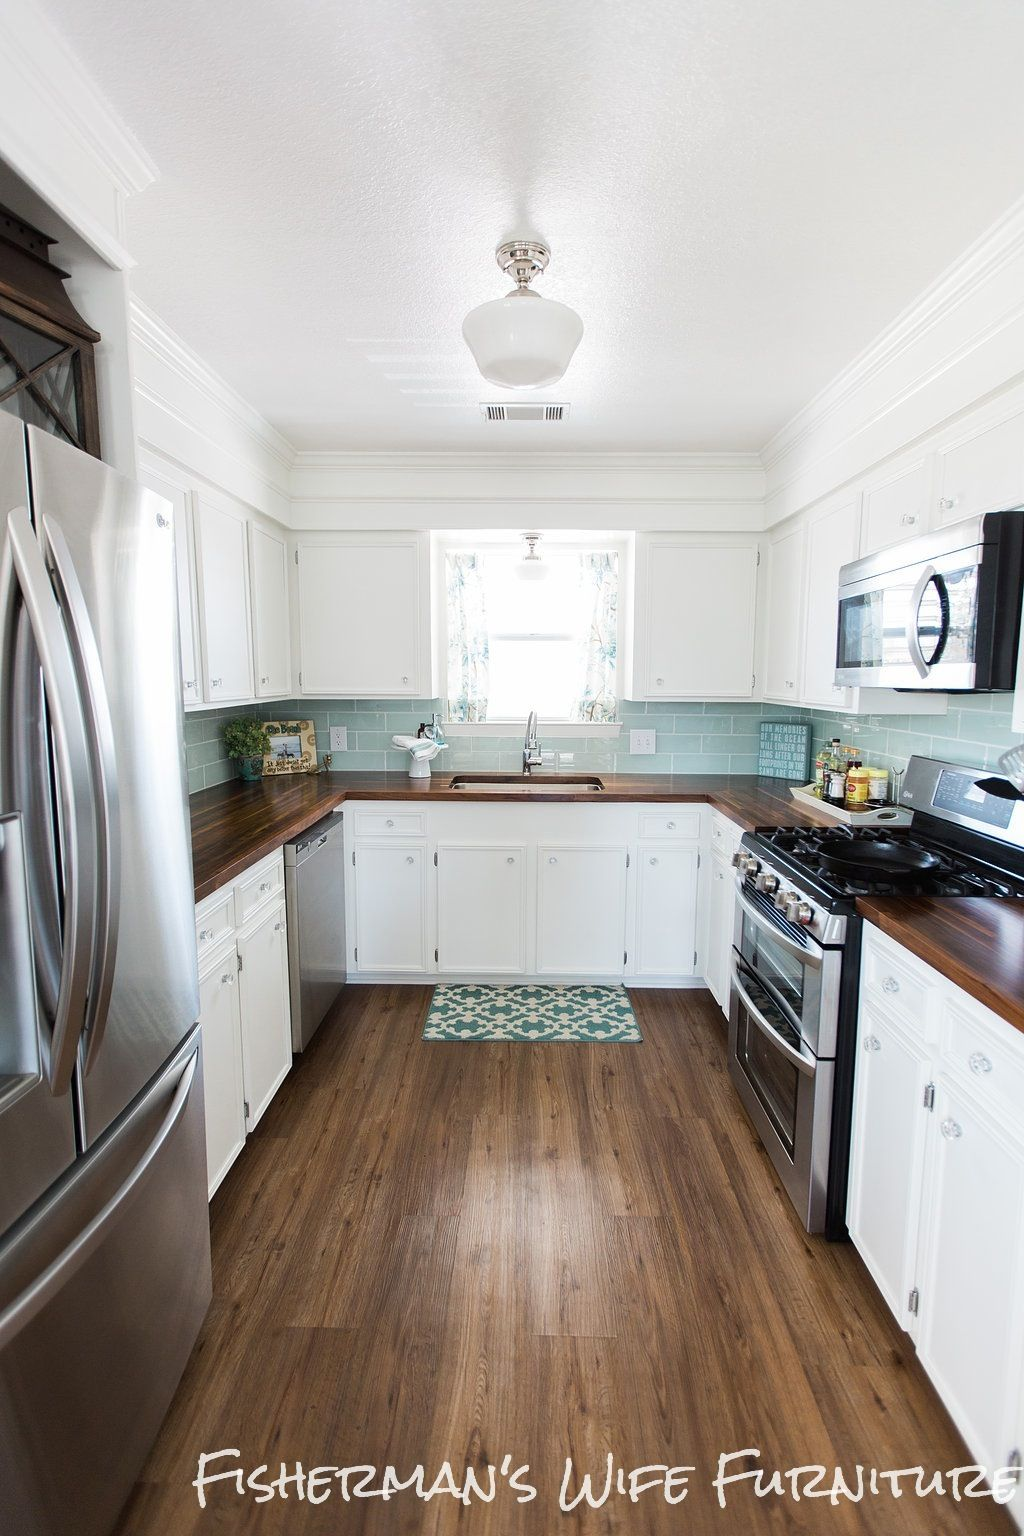 15 Great Storage Ideas For The Kitchen Anyone Can Do 14 | Kitchens ...